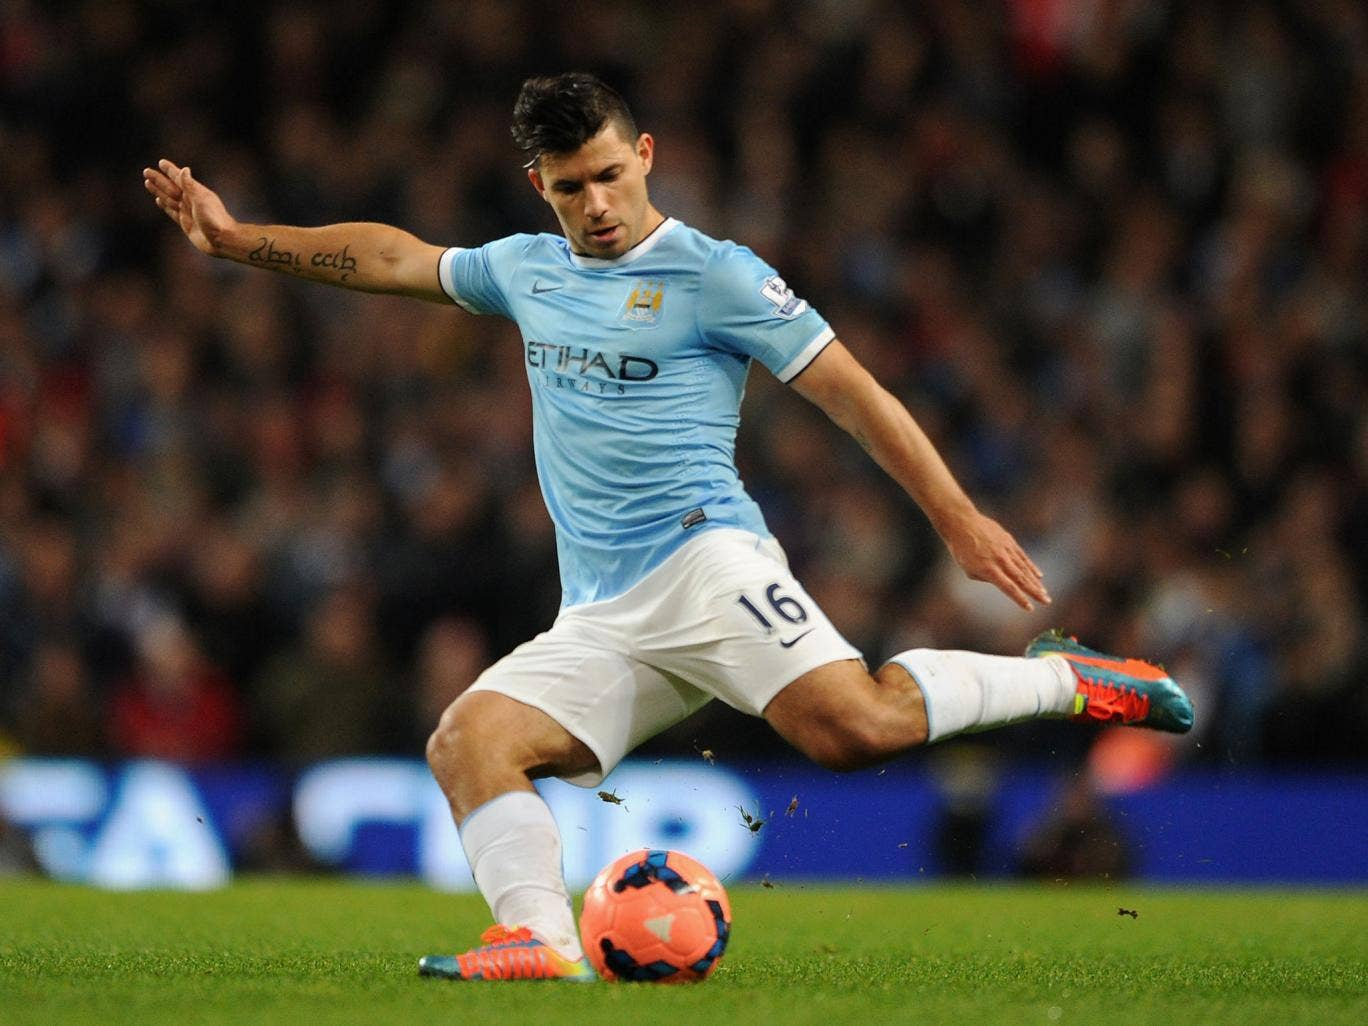 Sergio Aguero shoots during the 5-0 win over Blackburn Rovers after an eight-match absence for Manchester City